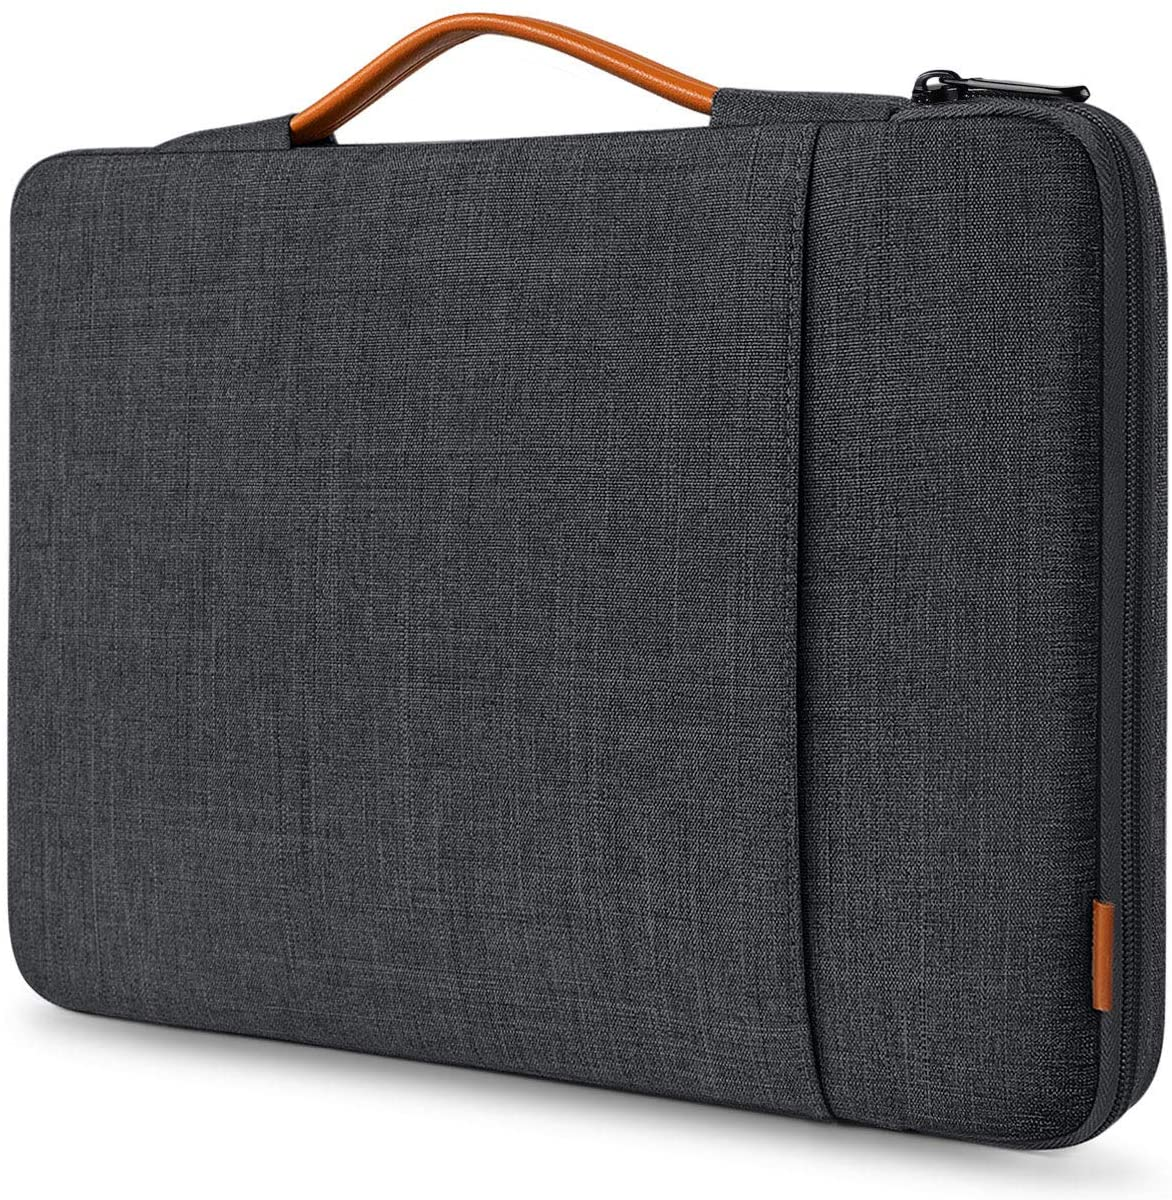 Inateck 13-13.5 Inch 360 Protective Laptop Sleeve LB02006, Black Gray